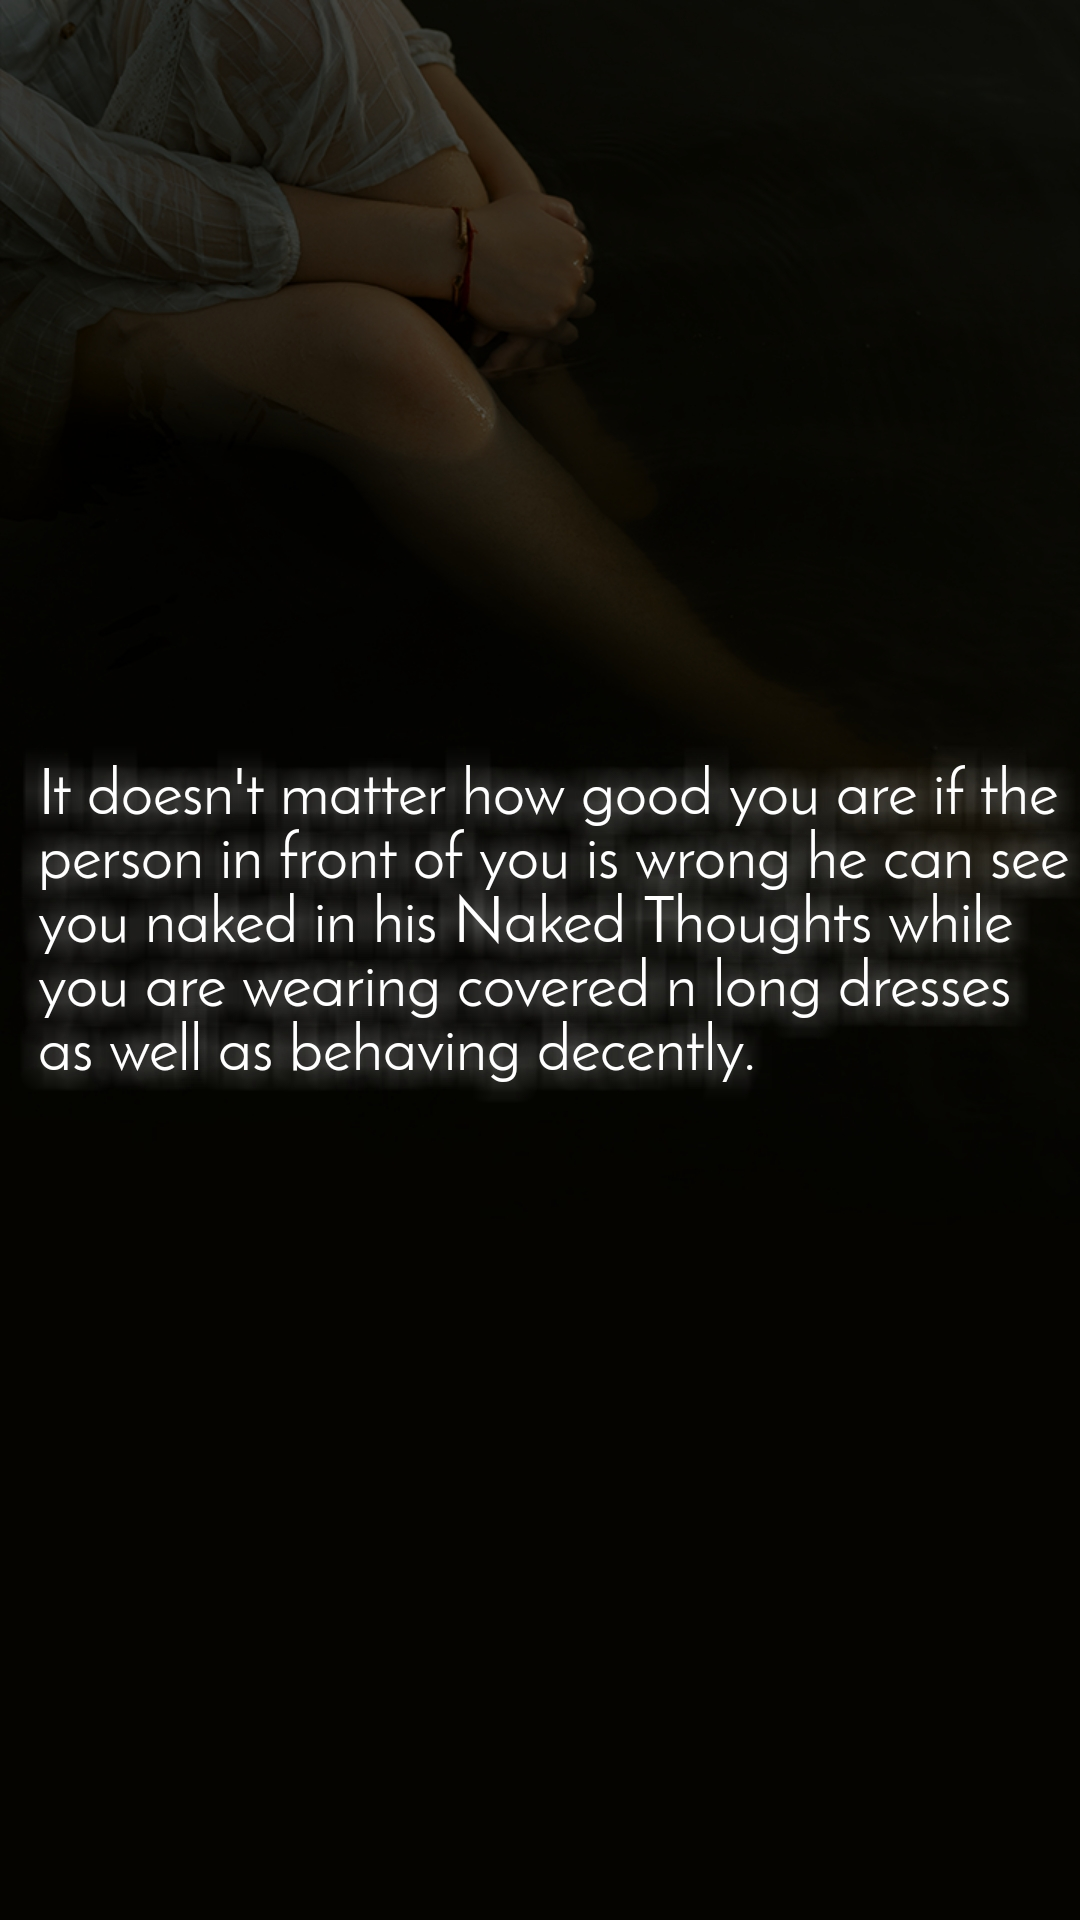 It doesn't matter how good you are if the person in front of you is wrong he can see you naked in his Naked Thoughts while you are wearing covered n long dresses as well as behaving decently.